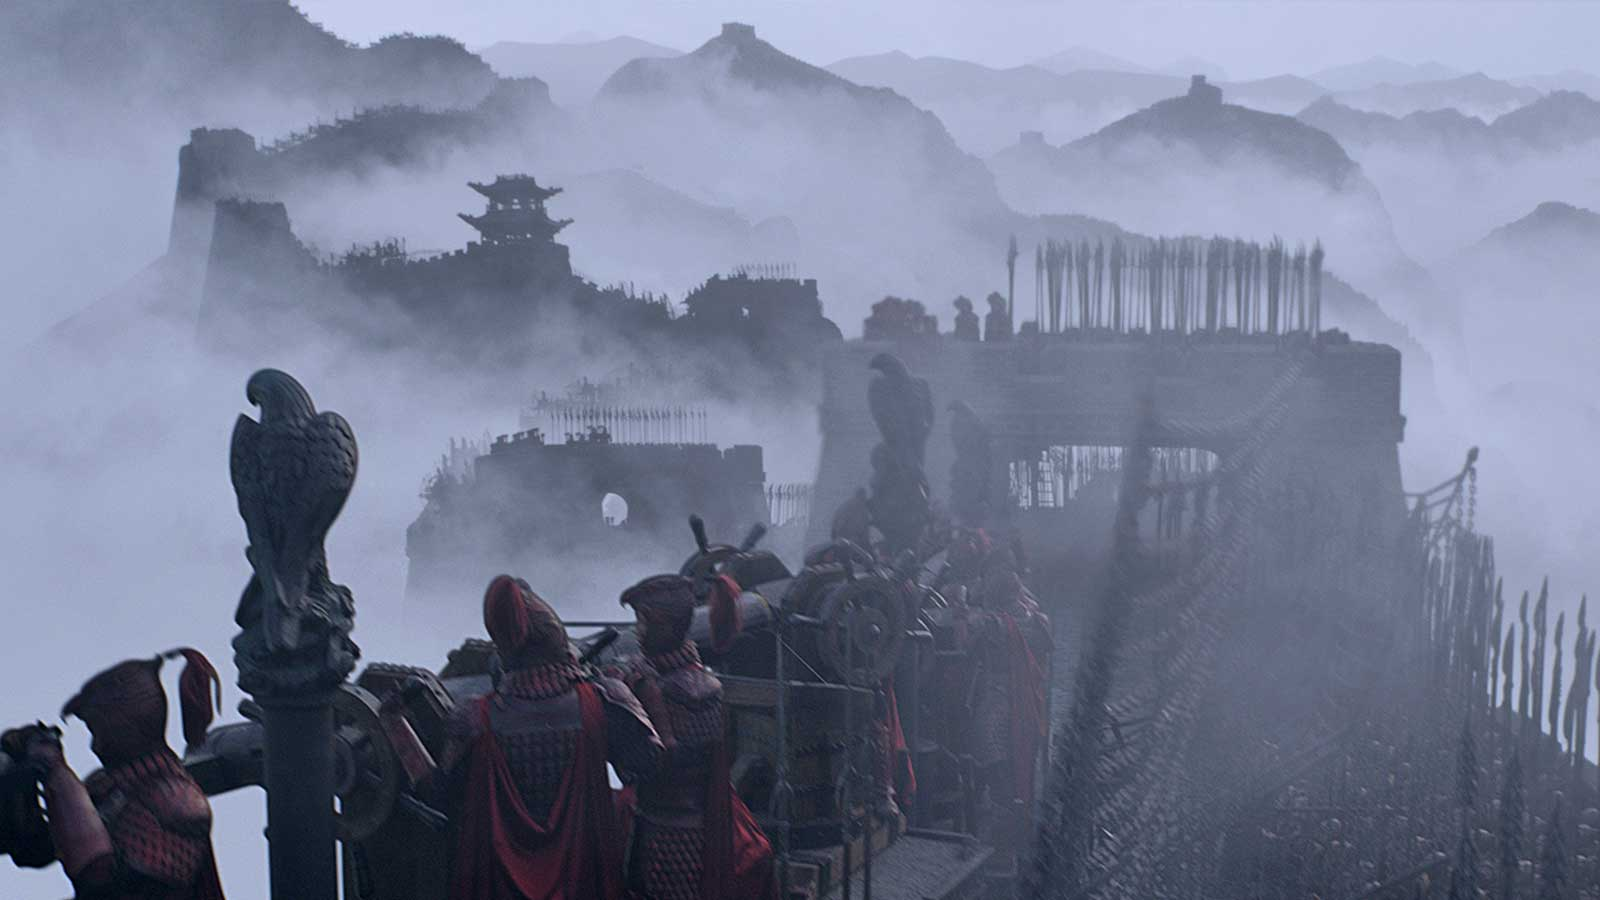 Watch The Glorious 9 Minute Long Trailer For The Great Wall The